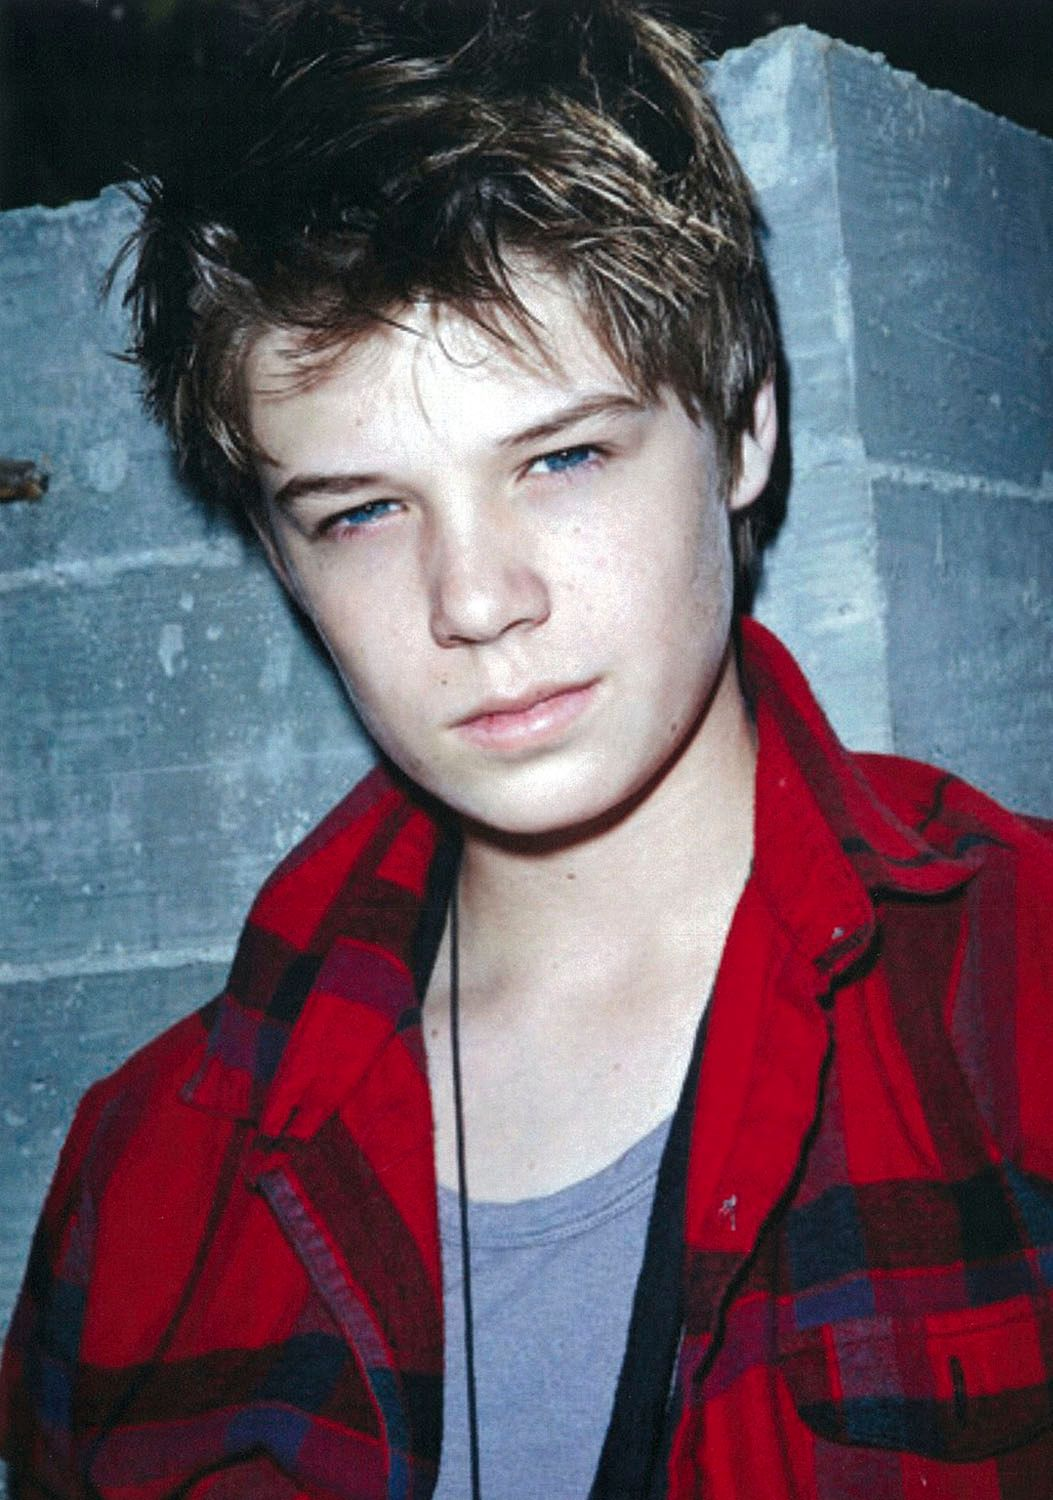 colin ford barefoot